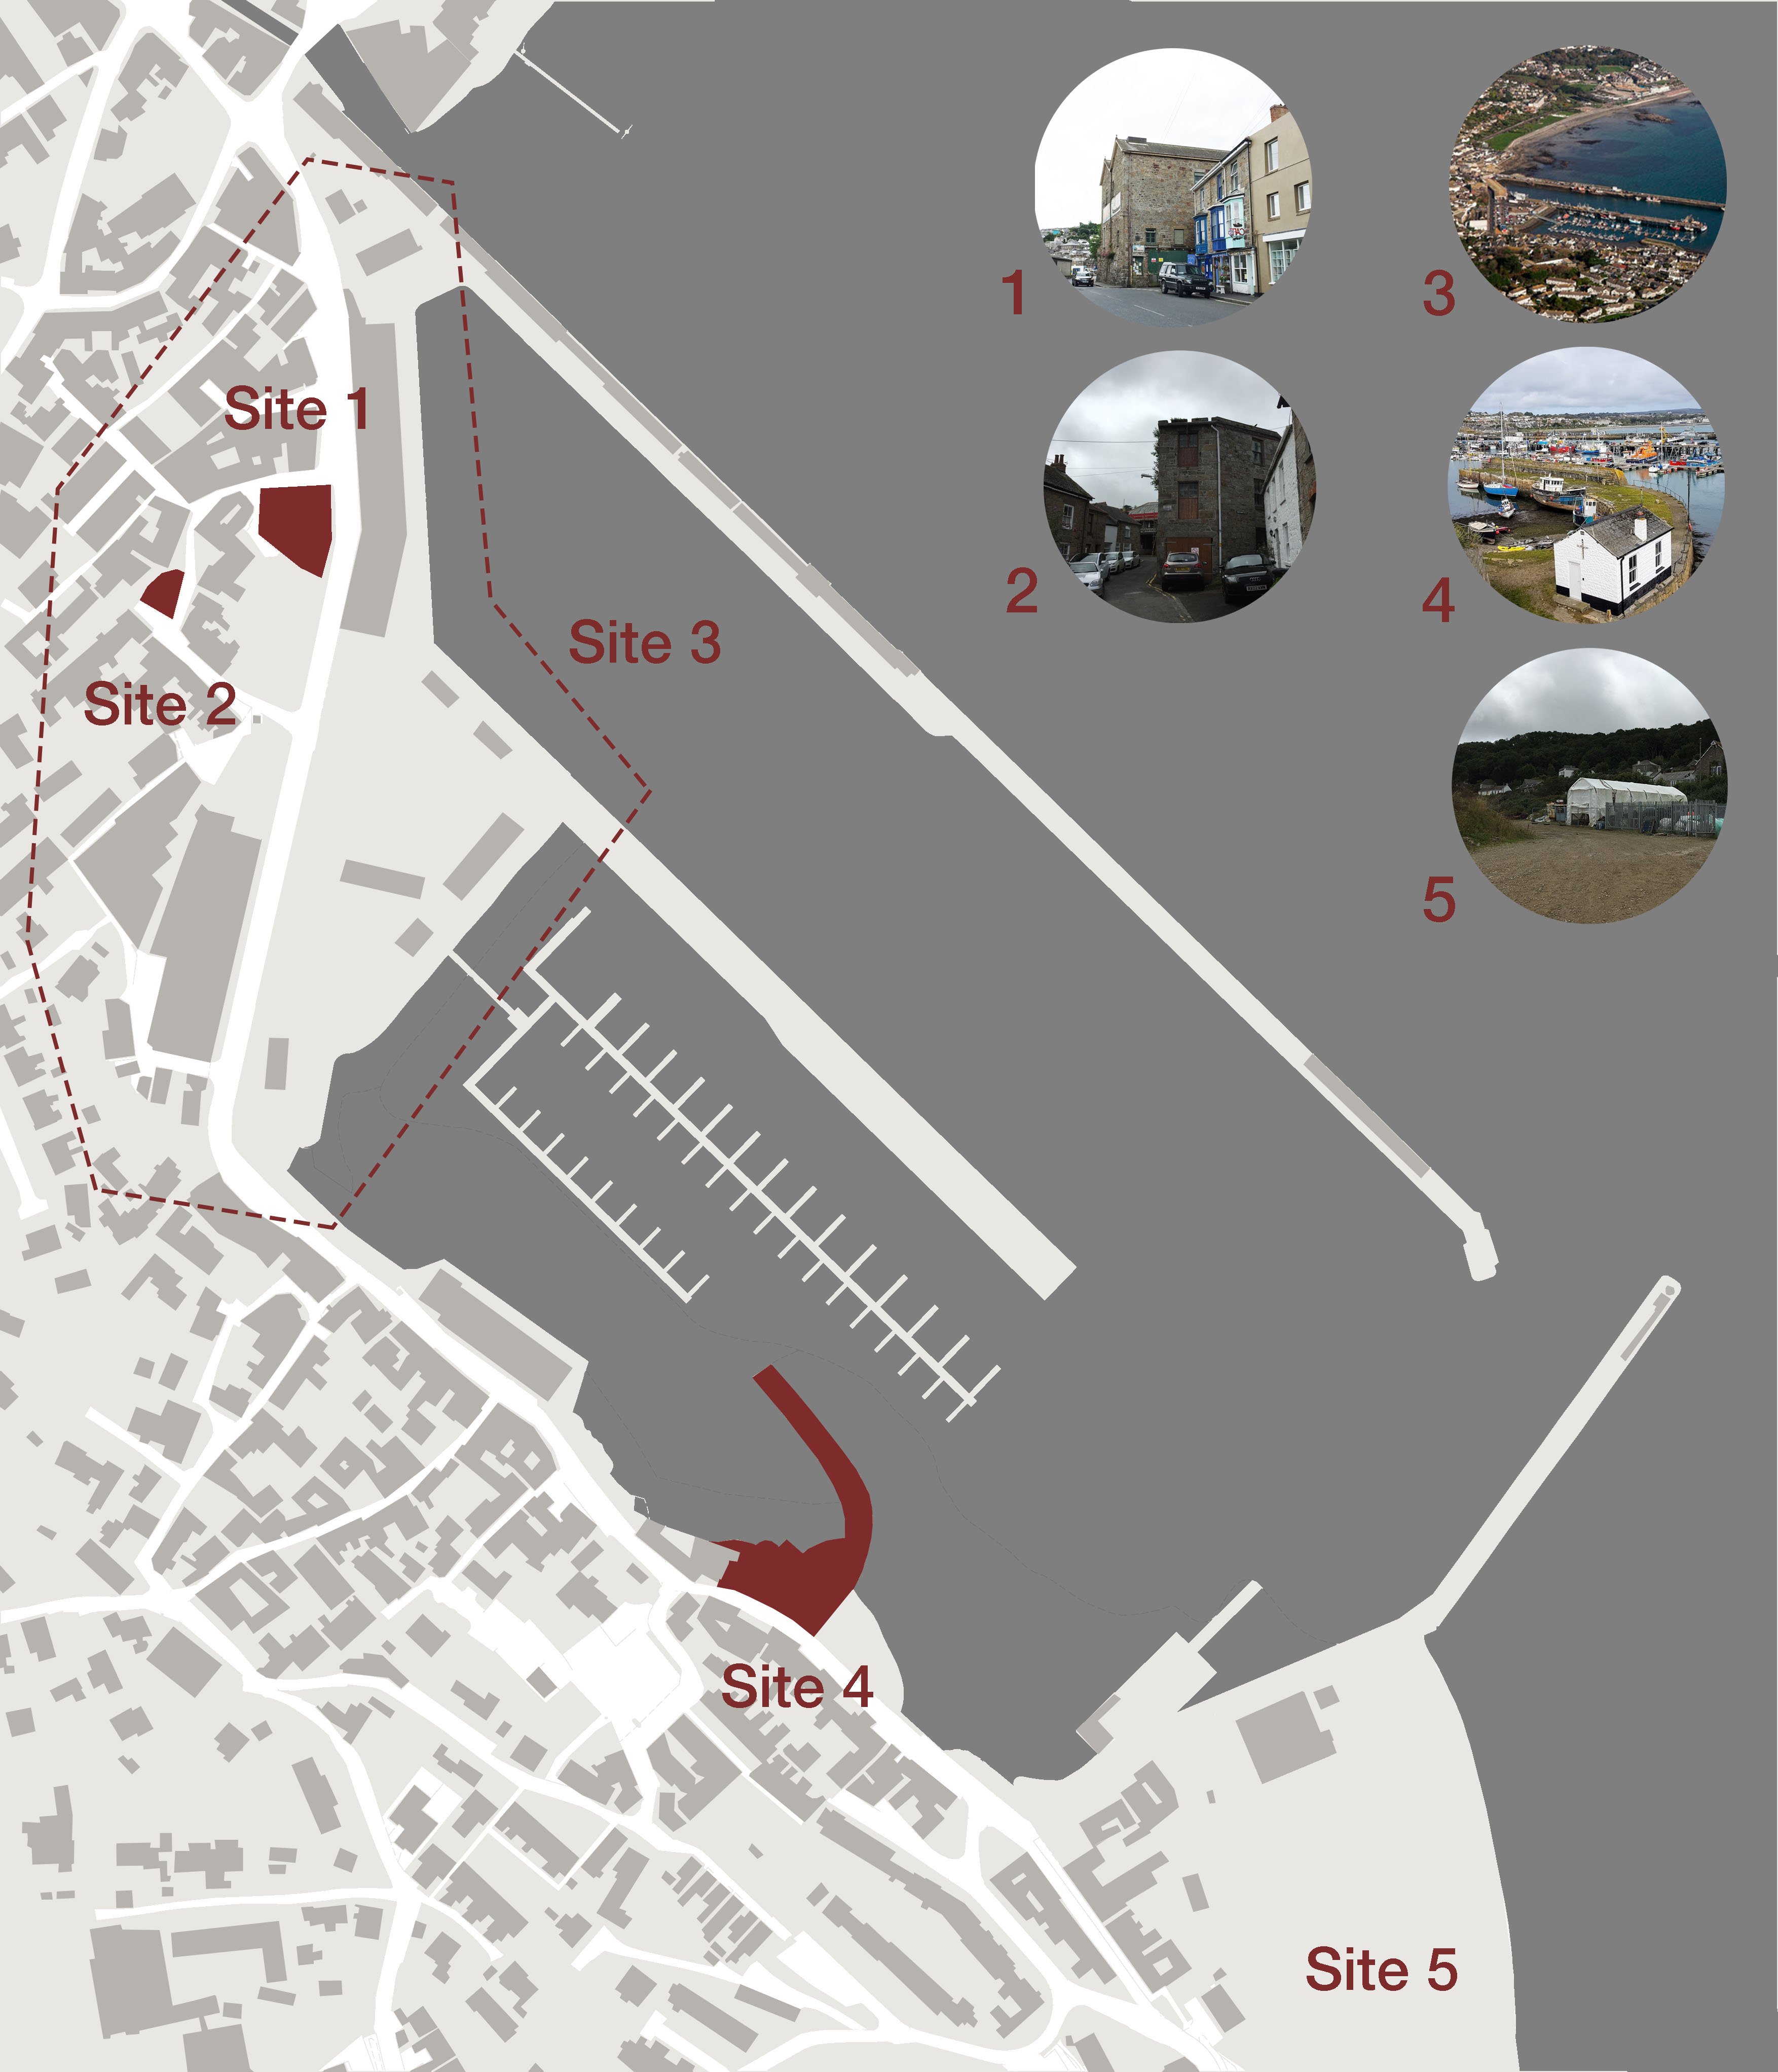 Site plan of Newlyn with the 5 sites highlighted. Images associated with each of the sites appear alongside.